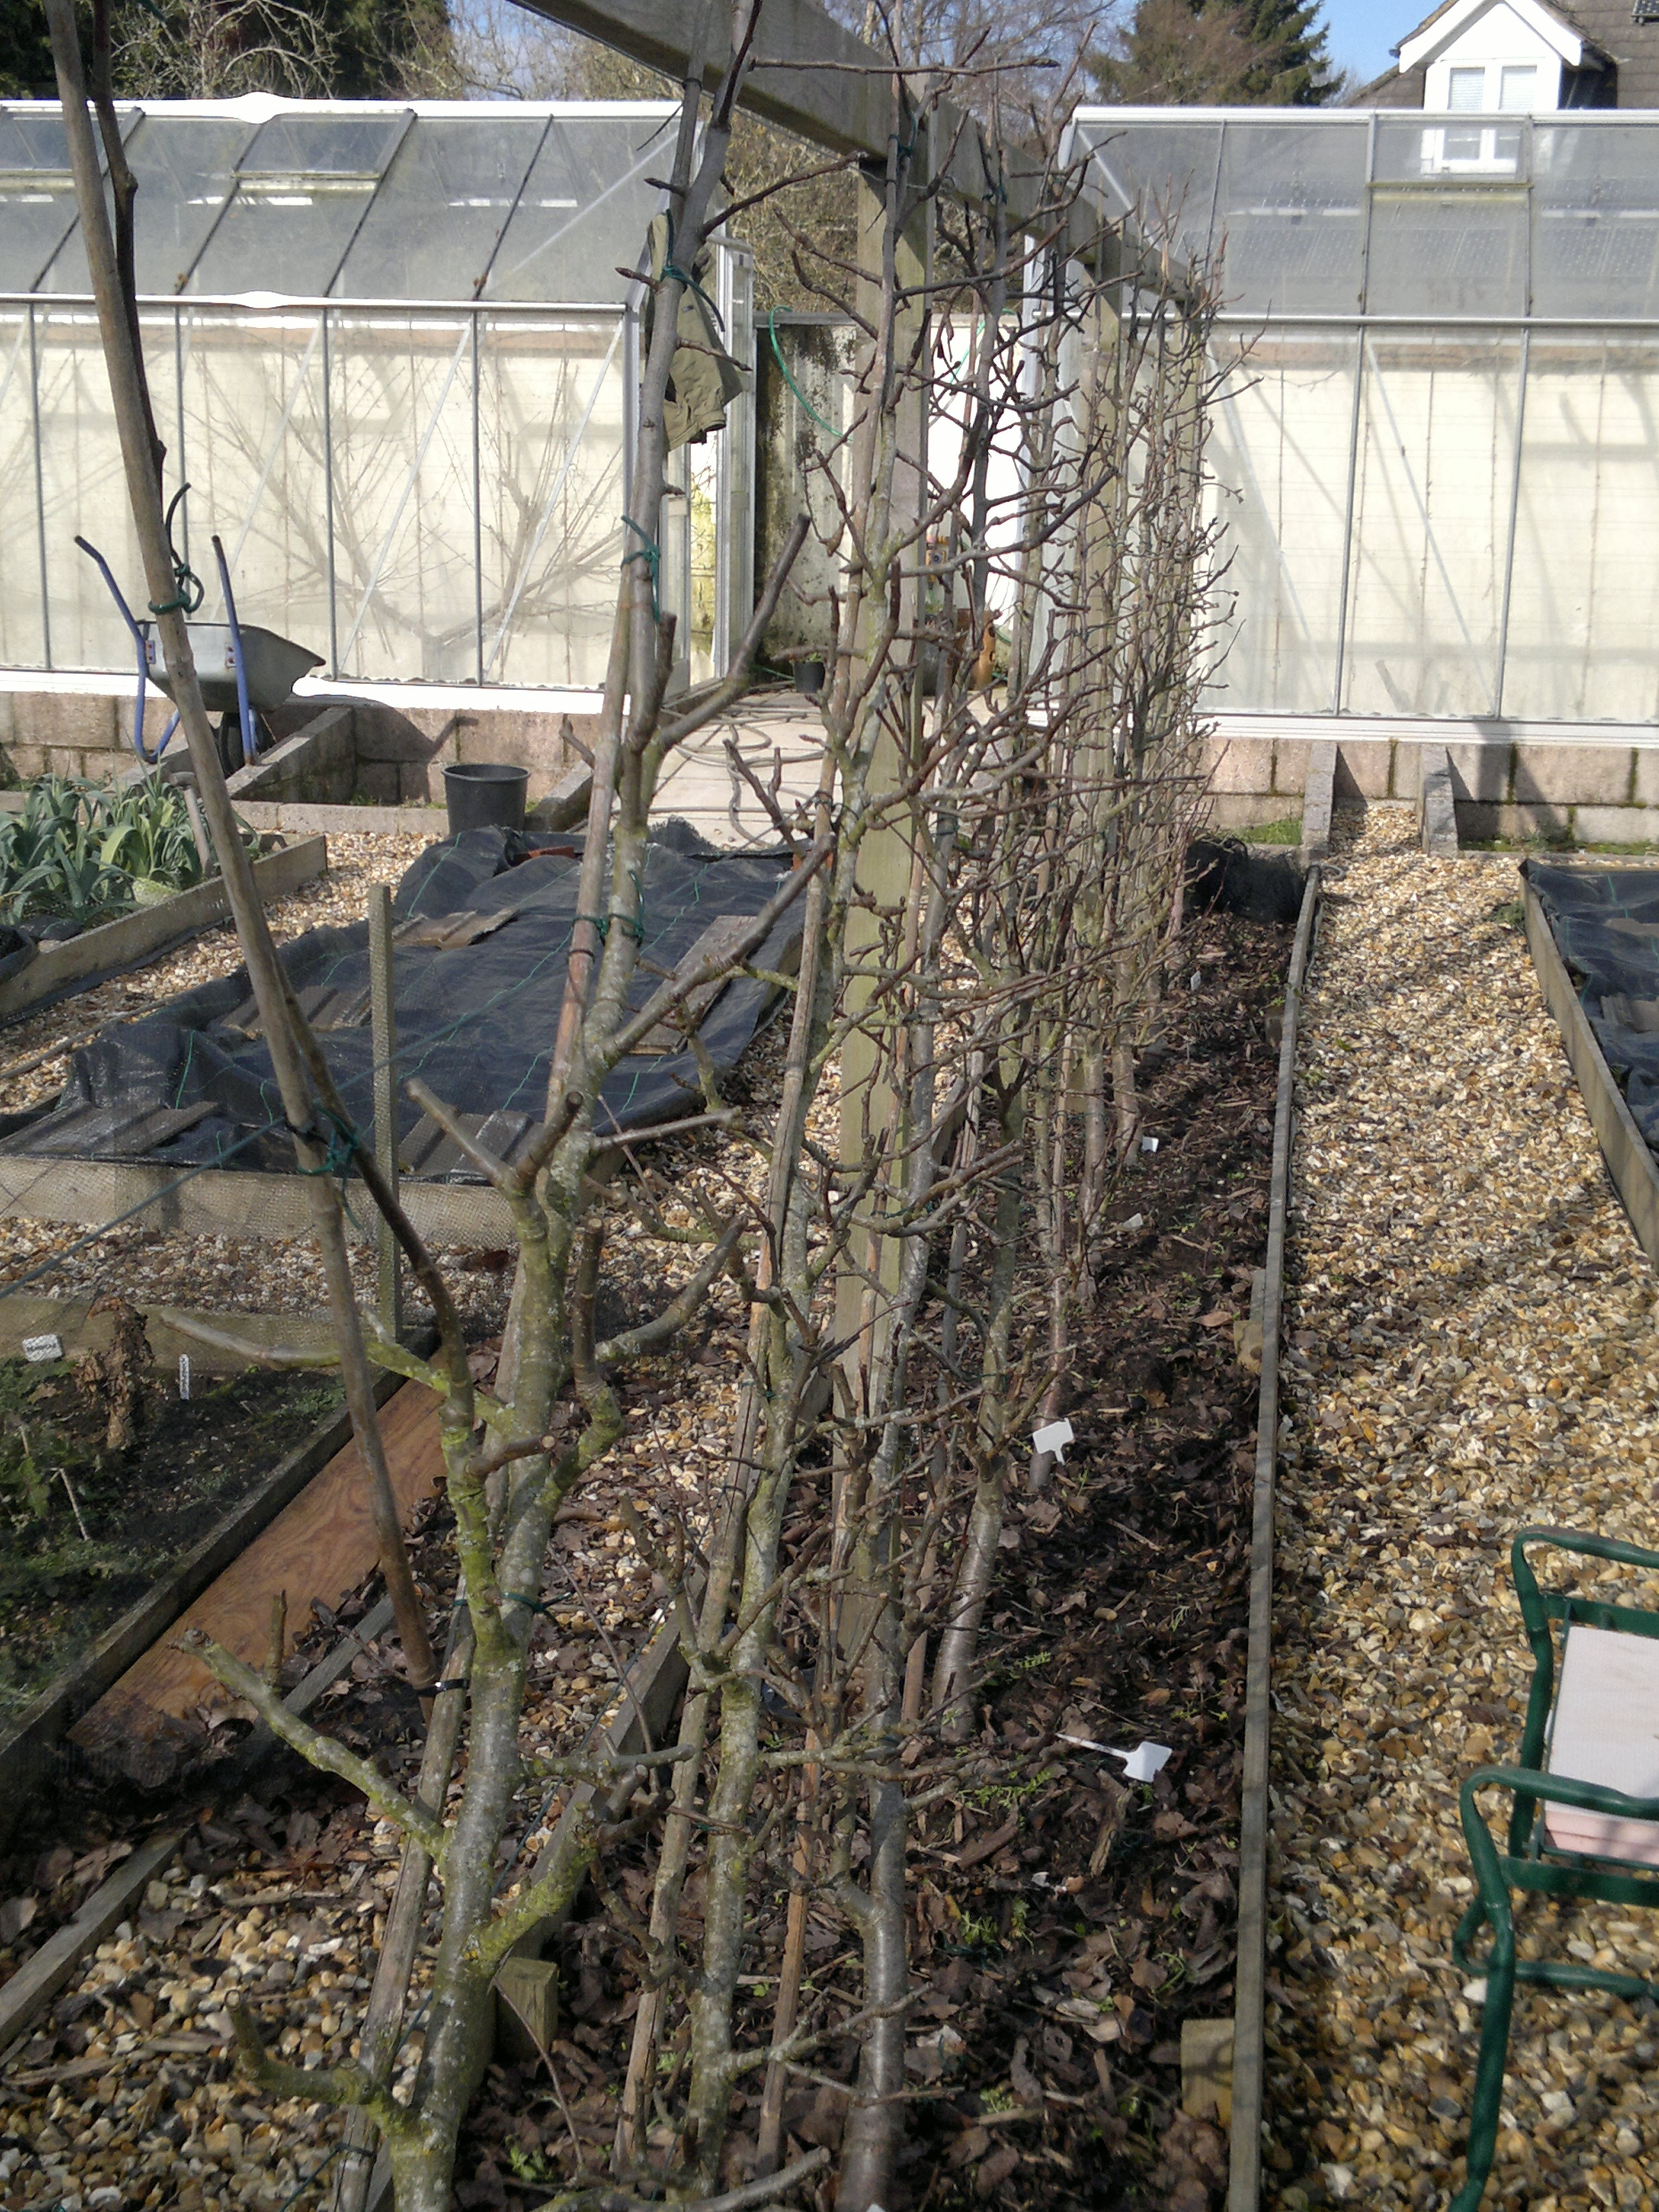 Cordon pears, pruned and retied